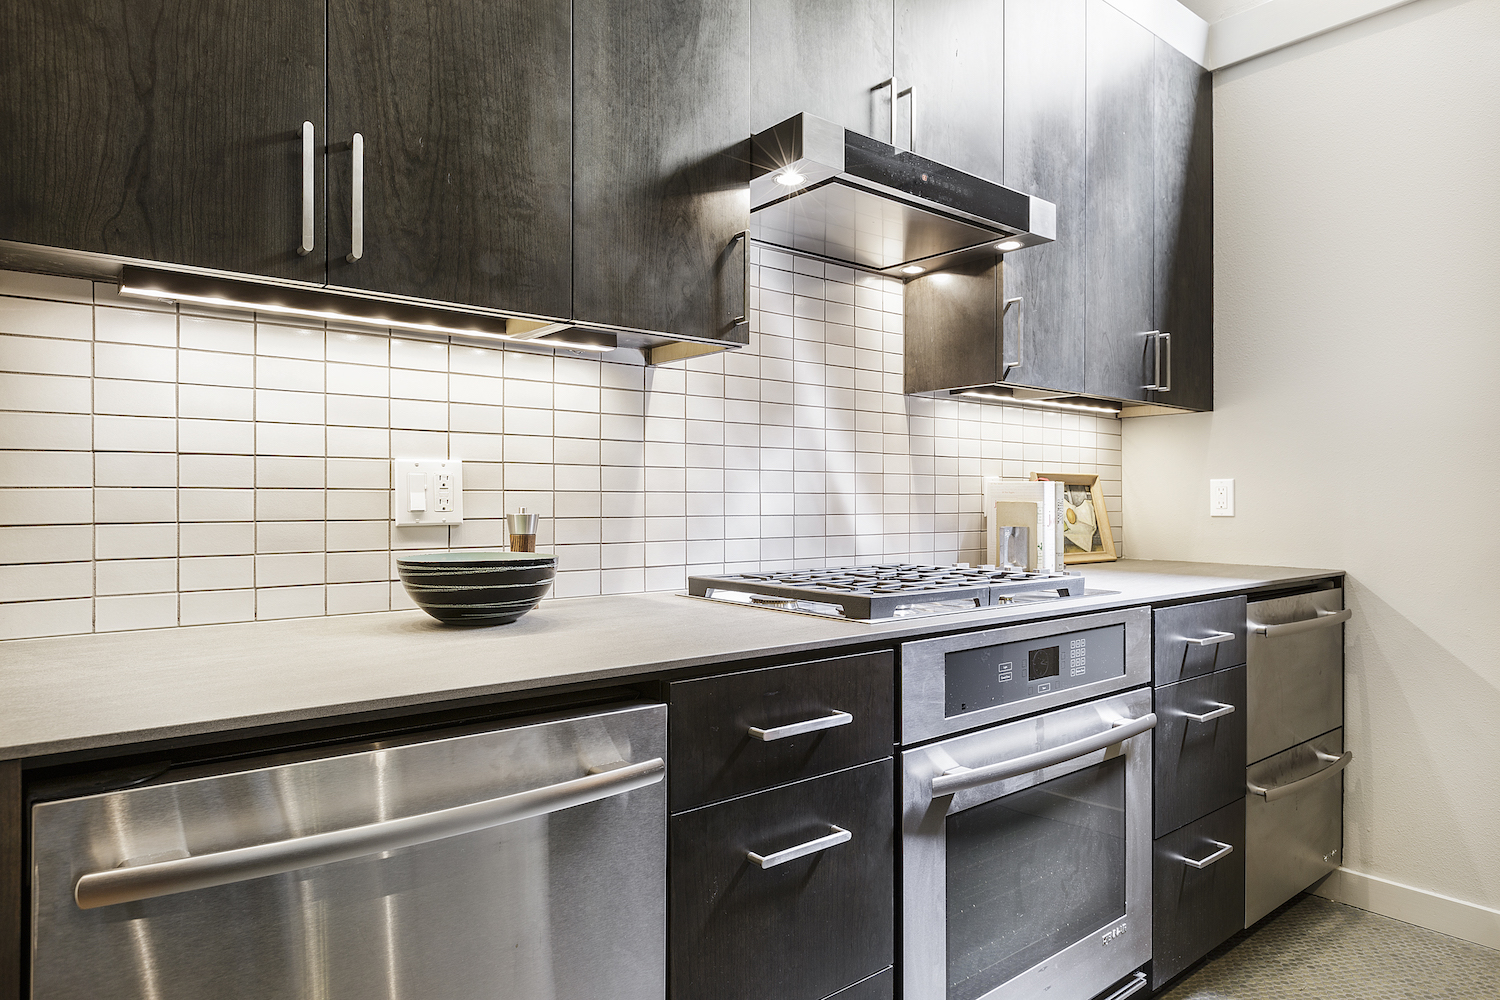 kitchen with dark wood cabinets and under cabinet lighting and stainless steel appliances and brushed nickel cabinet hardware and white tile backsplash.jpg